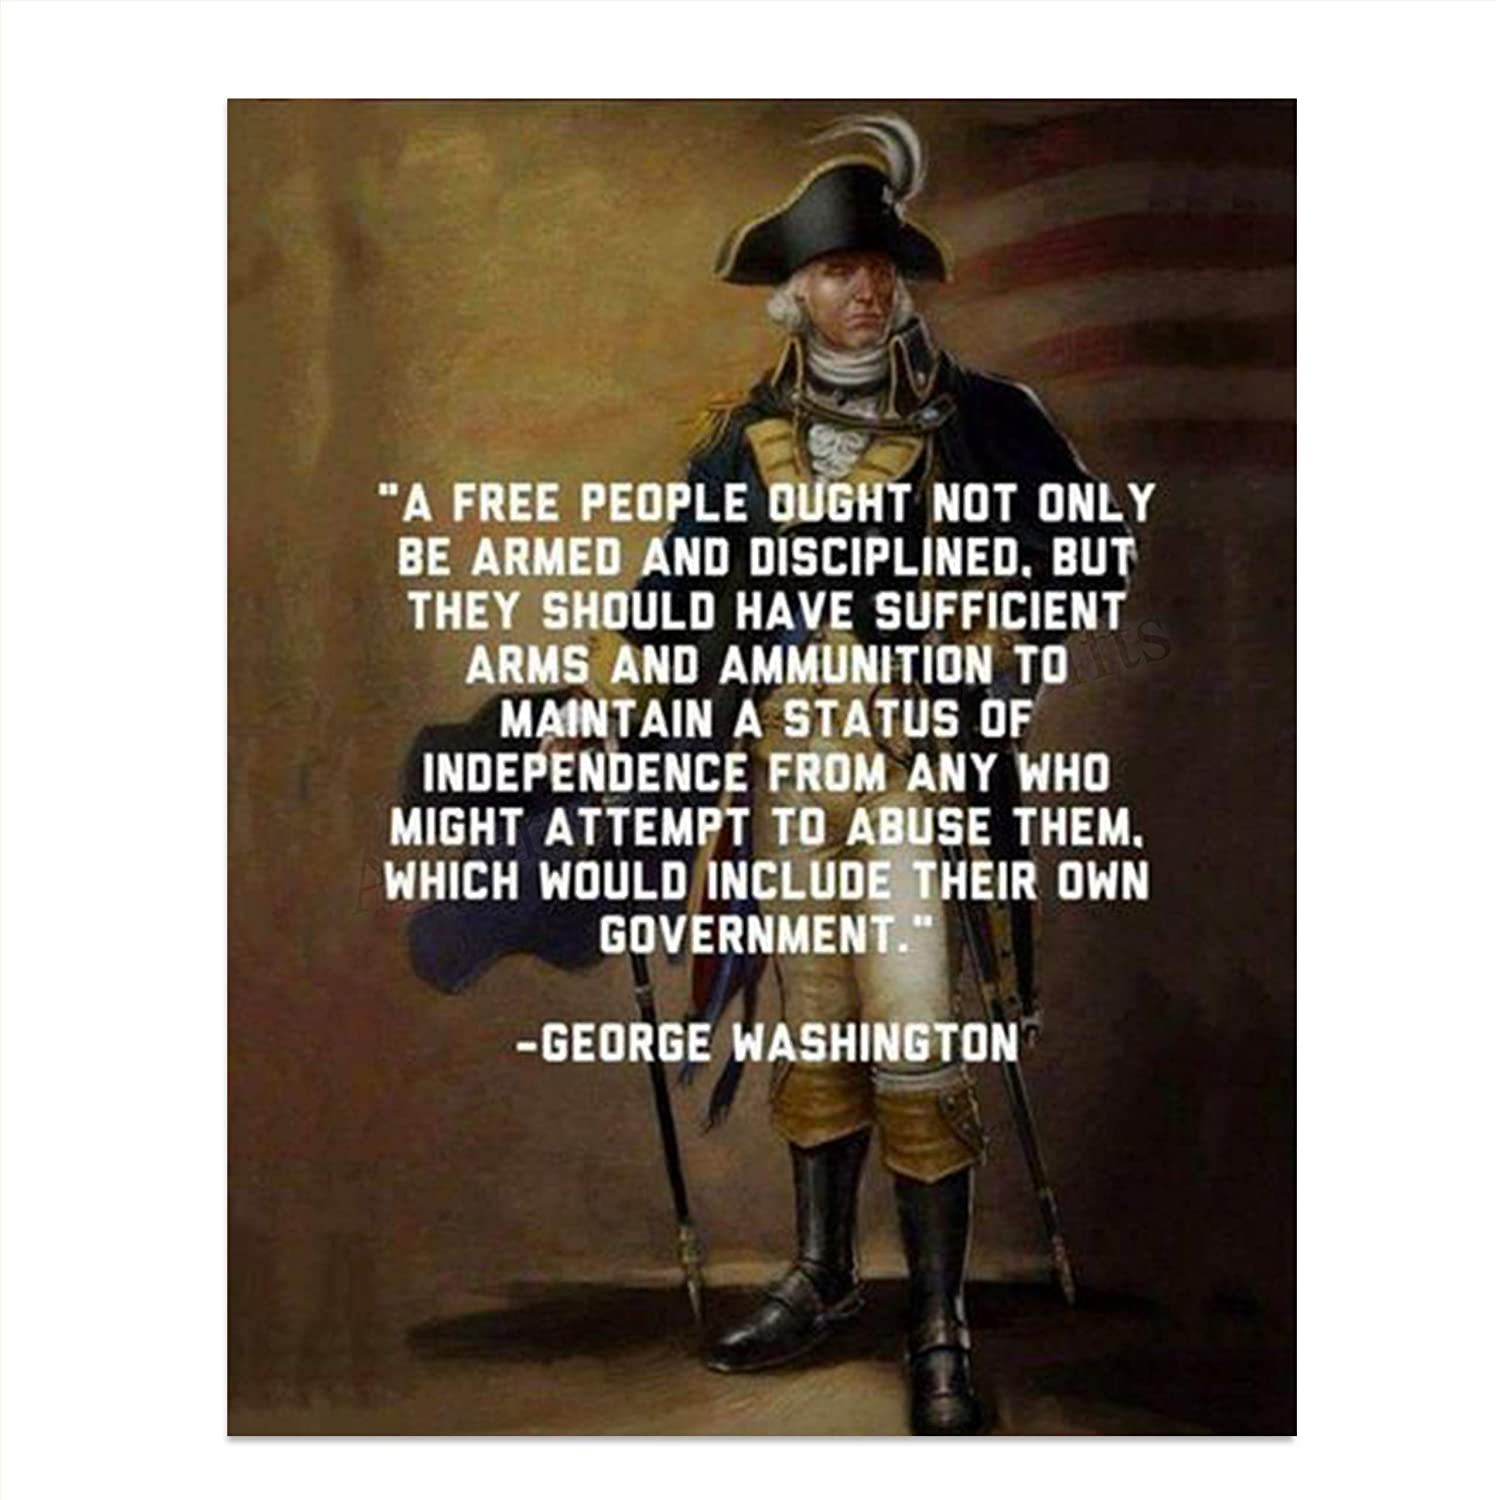 """George Washington Quotes Wall Art-""""Right to Bear Arms""""- 8 x 10""""- Wall Print Art-Ready to Frame. Home Décor. Office-Lodge-Garage Décor. General George Washington Military Pose- 2nd Amendment Rights."""